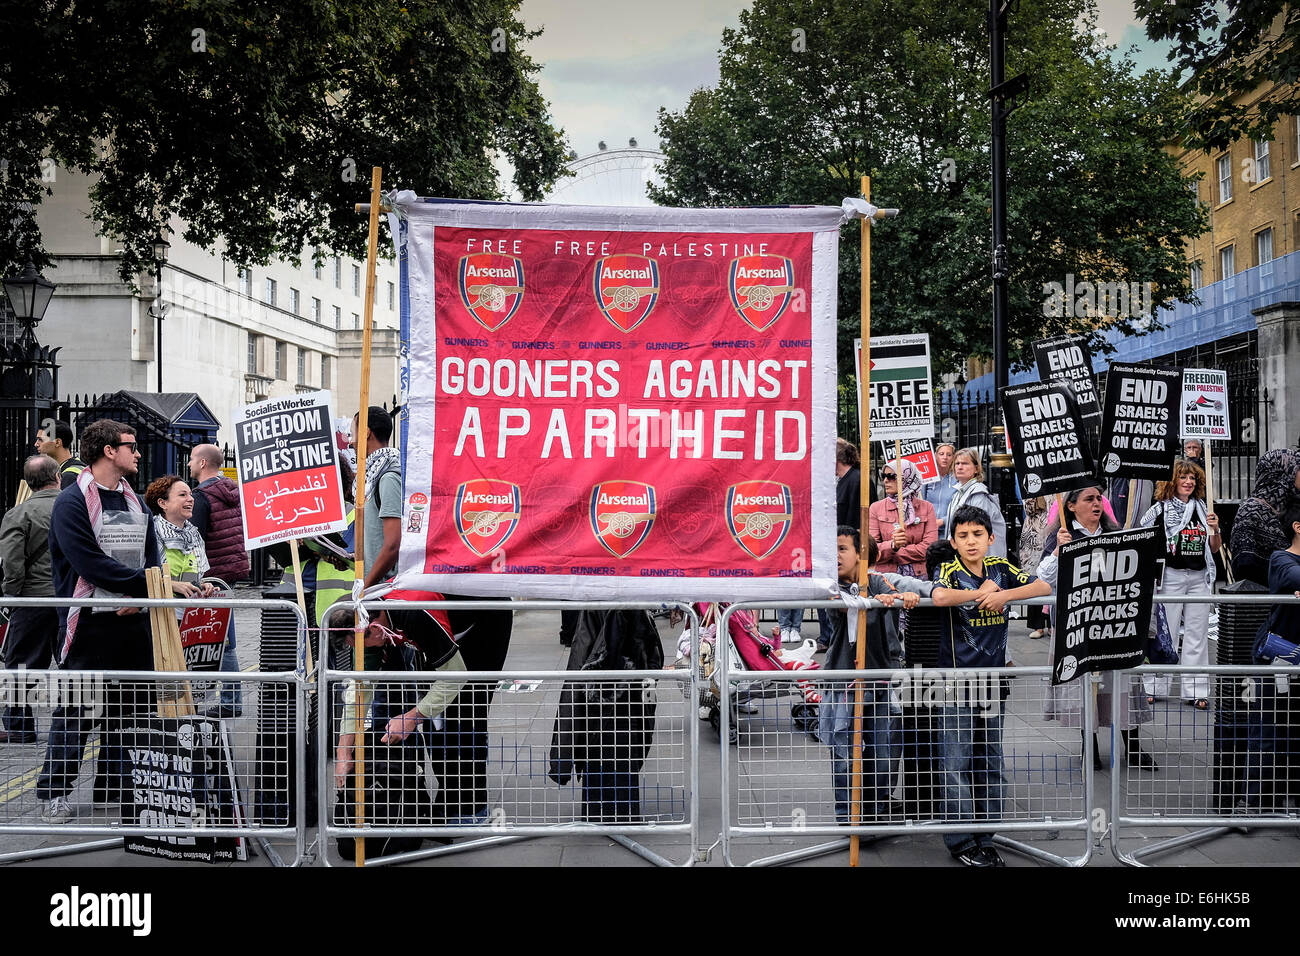 Pro-Palestinian protesters demonstrate outside Downing street against arms sales to Israel. - Stock Image